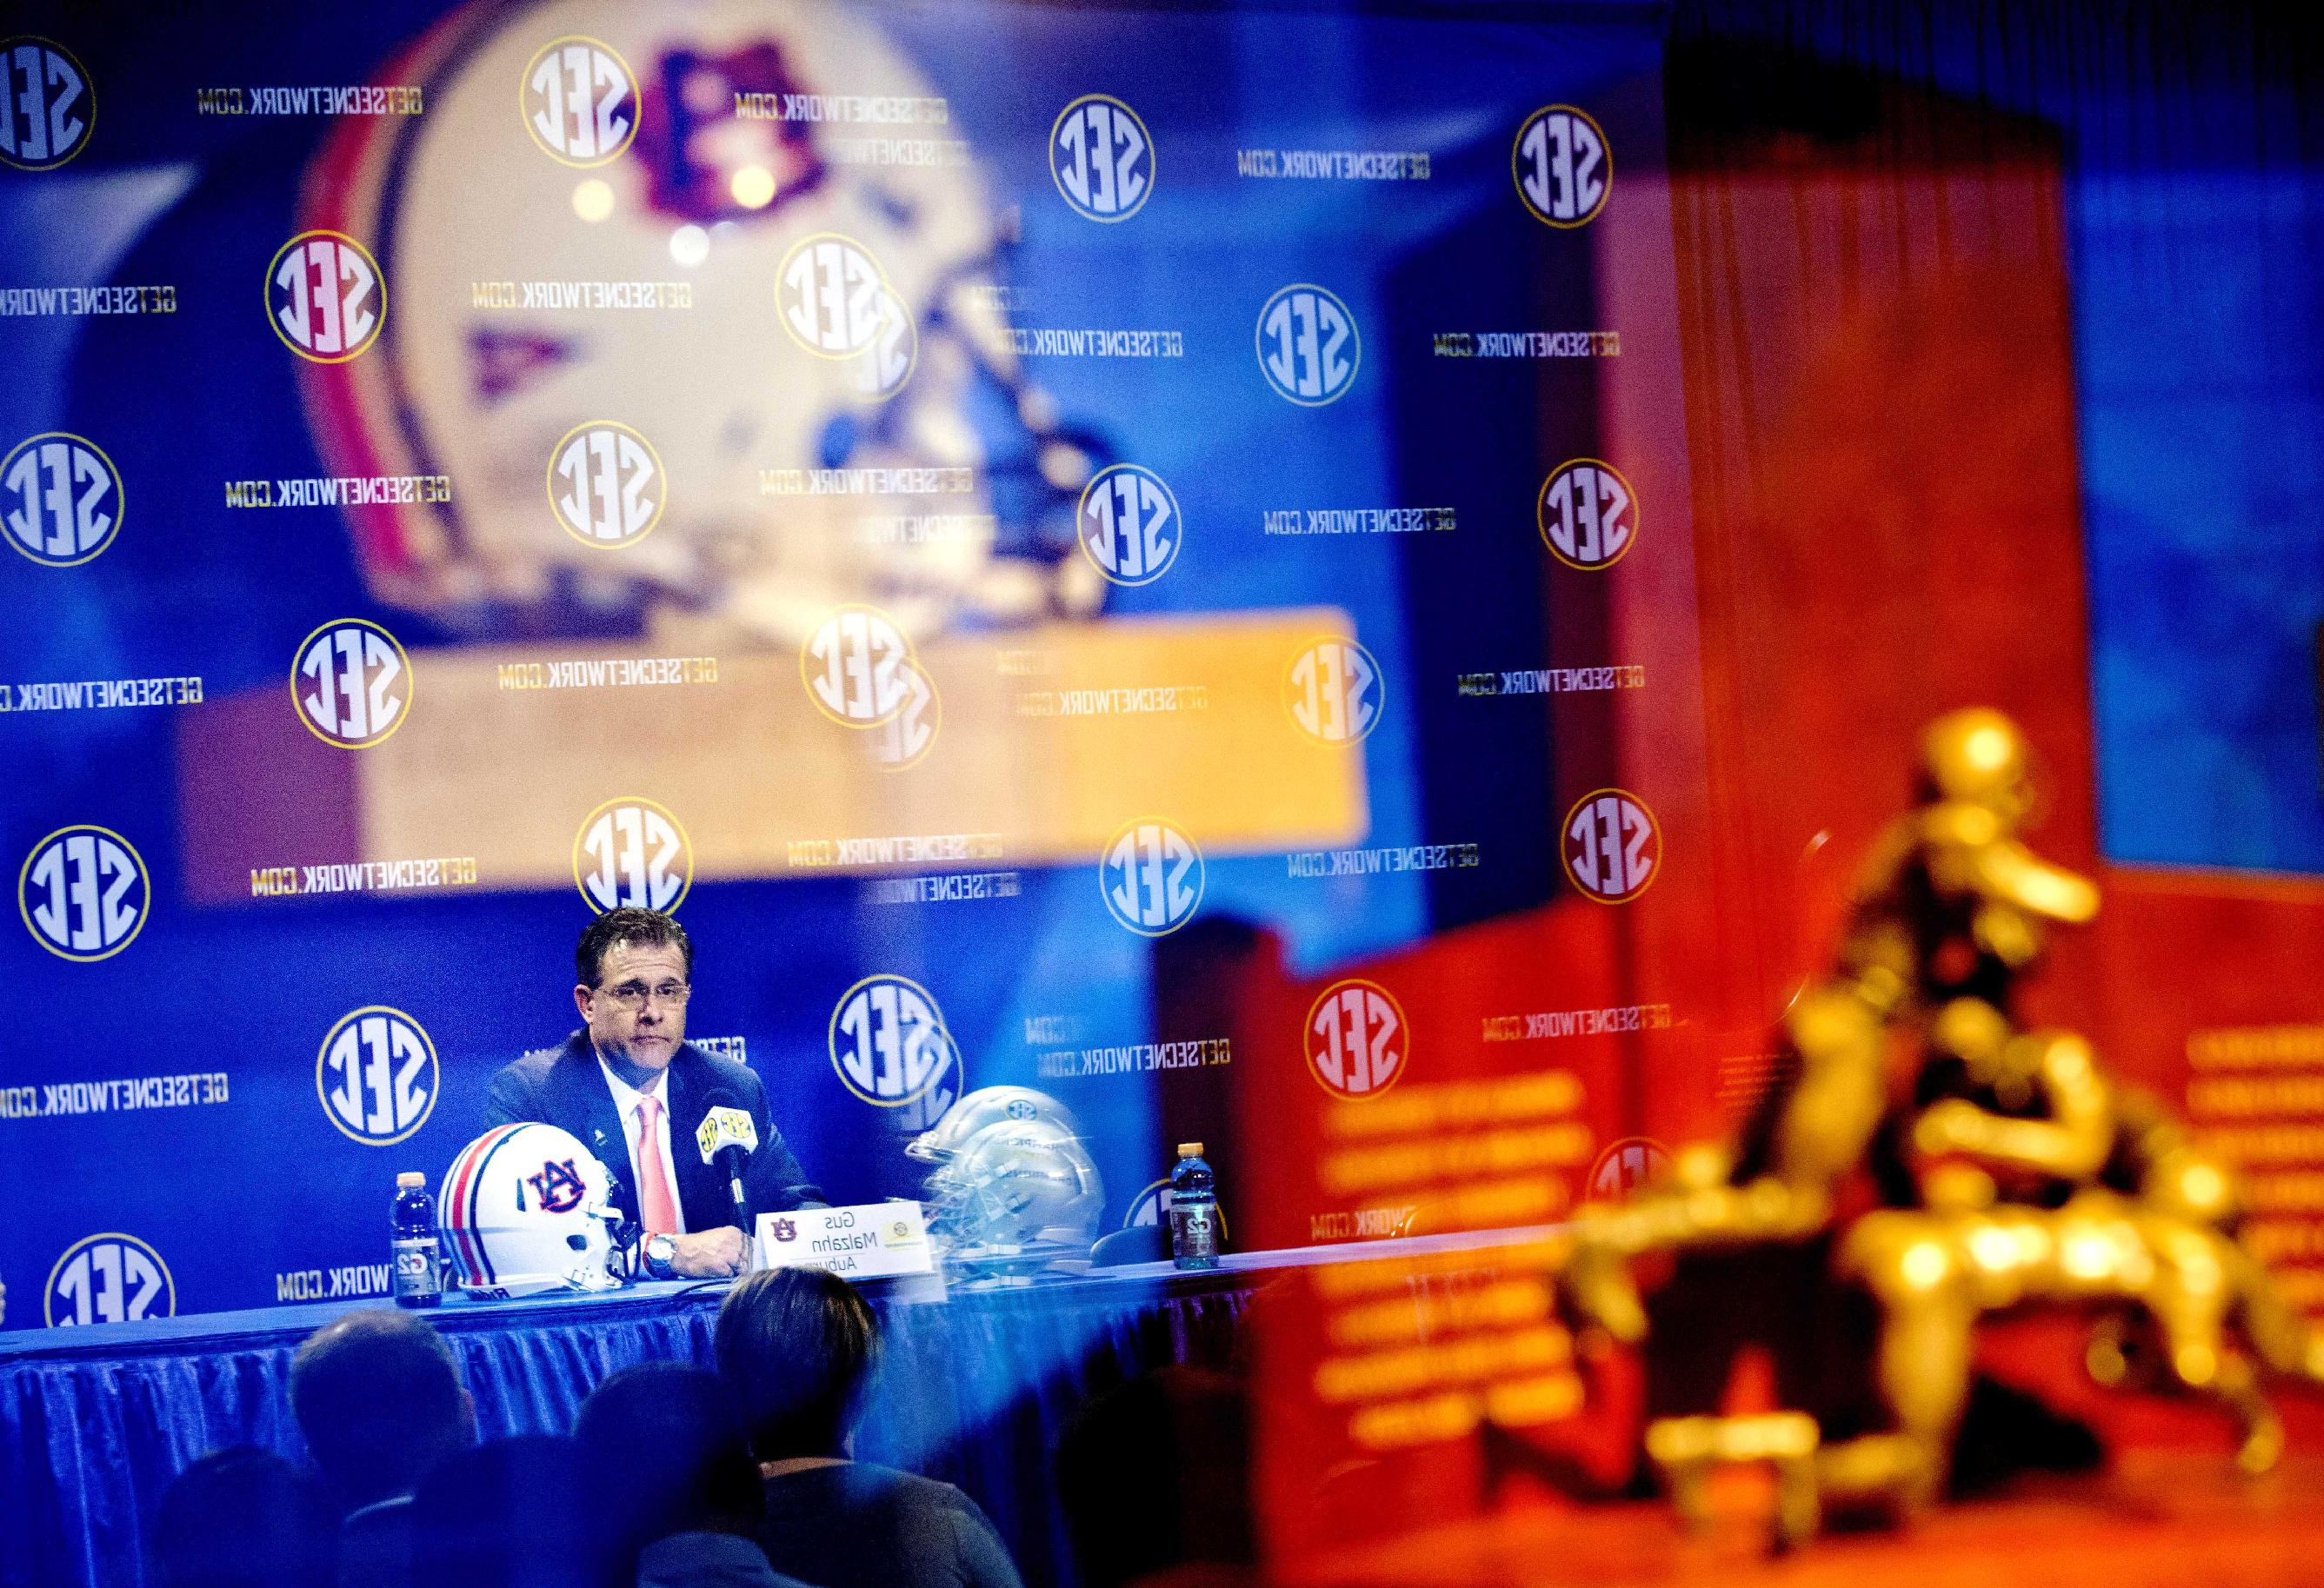 Auburn head coach Gus Malzahn is reflected in a glass case showcasing his team's helmet, top left, and the Southeastern Conference championship trophy at right, as he pauses while speaking at a press conference ahead of Saturday's SEC championship college football game against Missouri, Friday, Dec. 6, 2013, in Atlanta